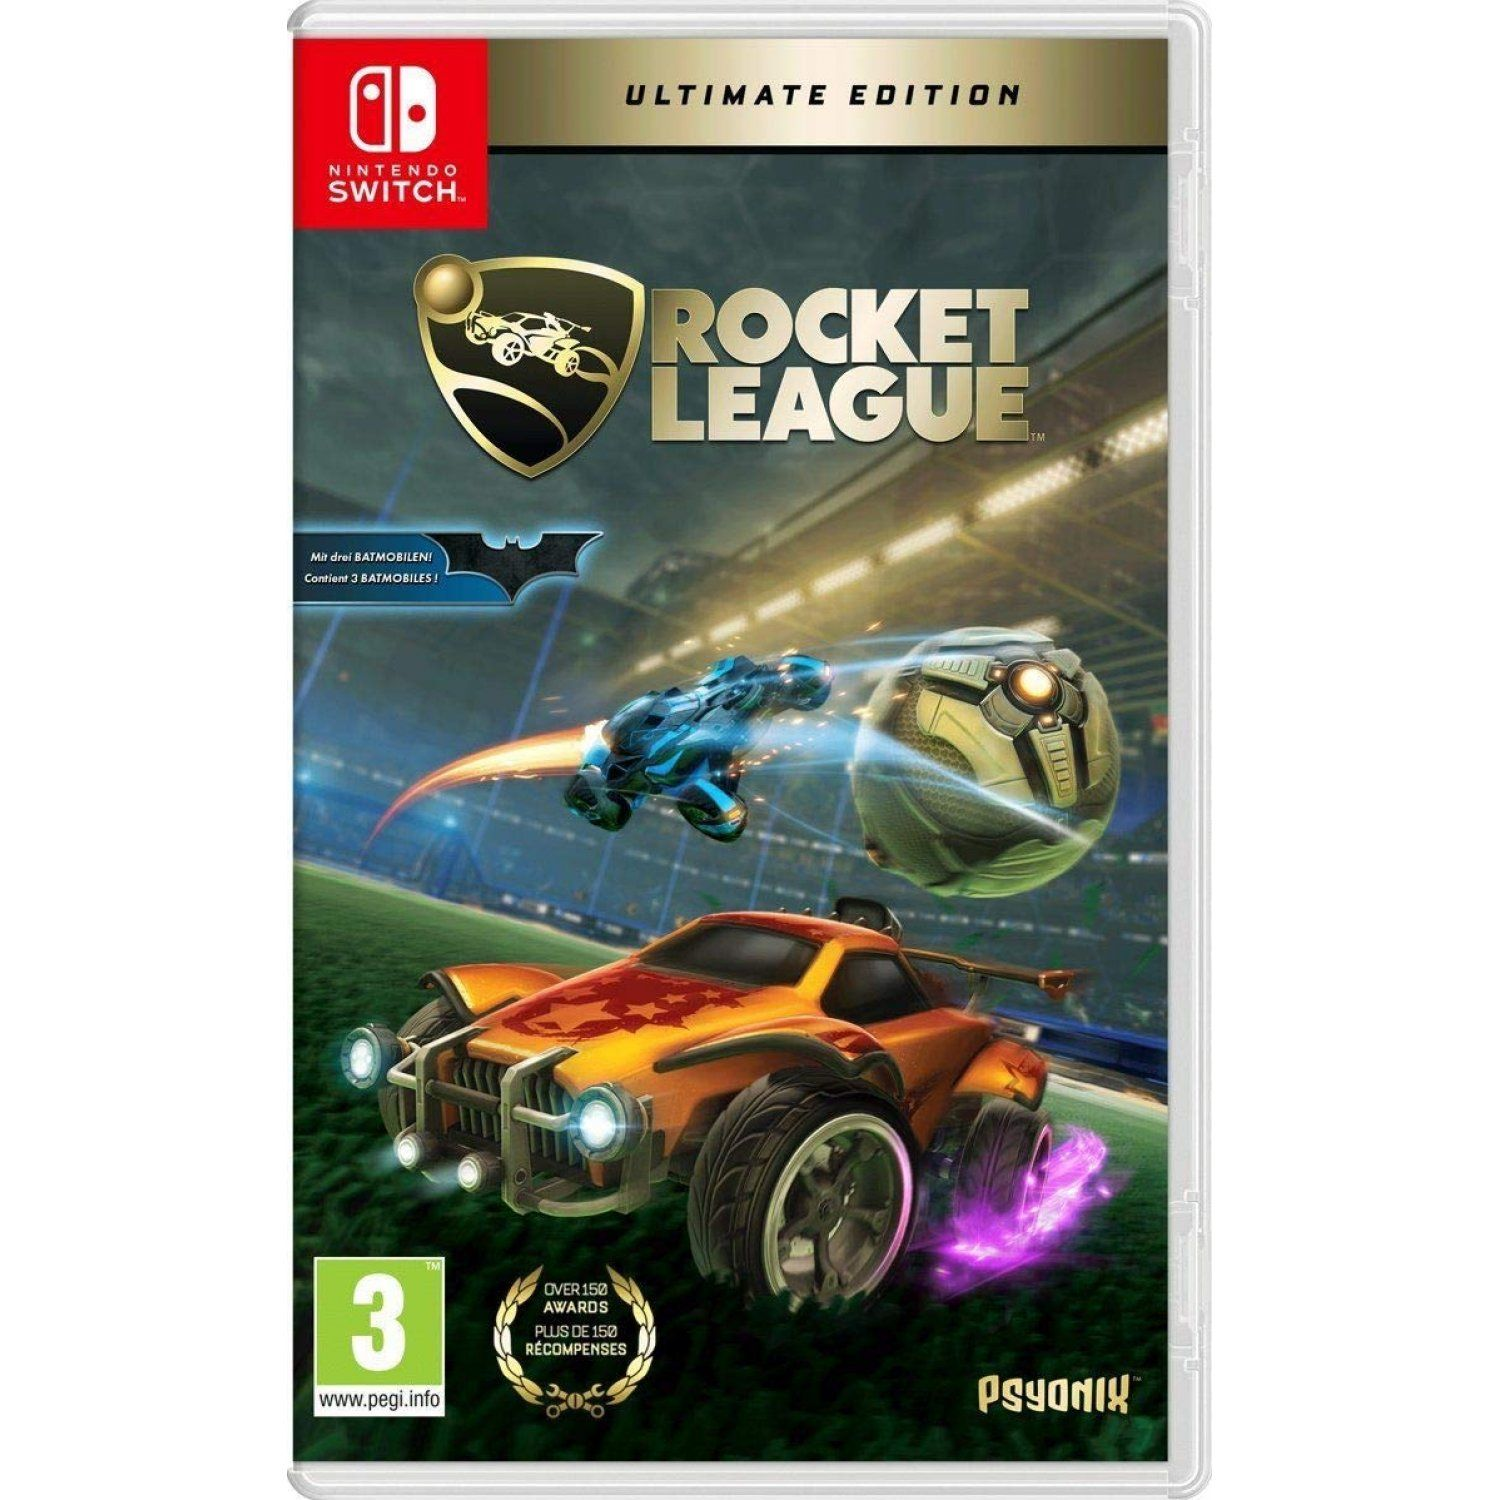 Rocket League [Ultimate Edition] Nintendo switch, Ps4 or